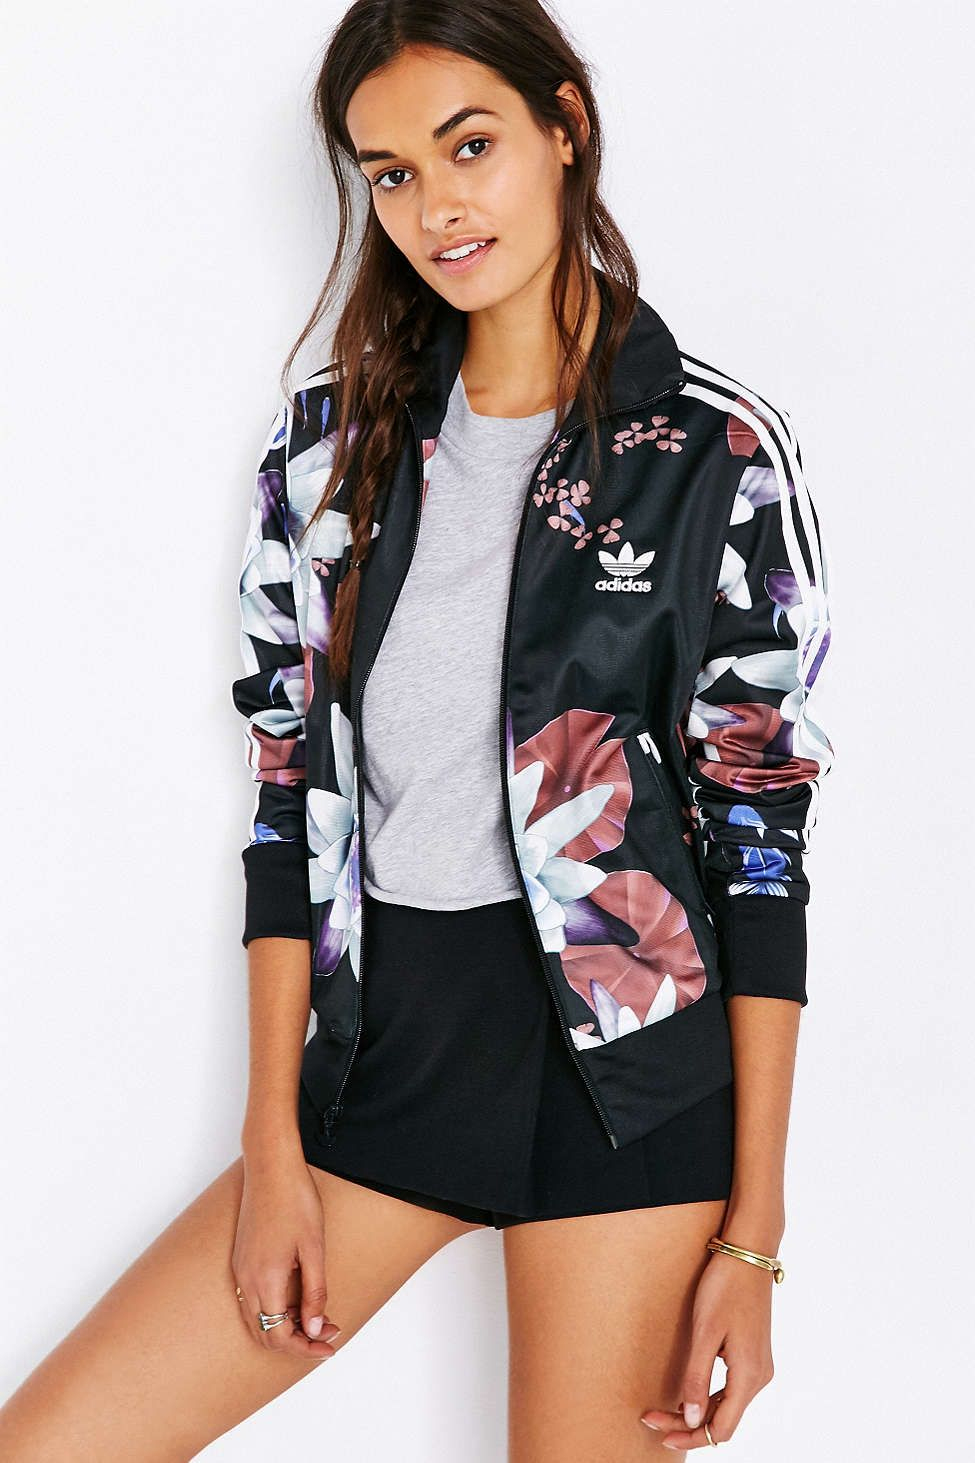 83b3b2b5158 adidasrunning on | Clothes I love | Adidas jacket, Adidas, Sport outfits